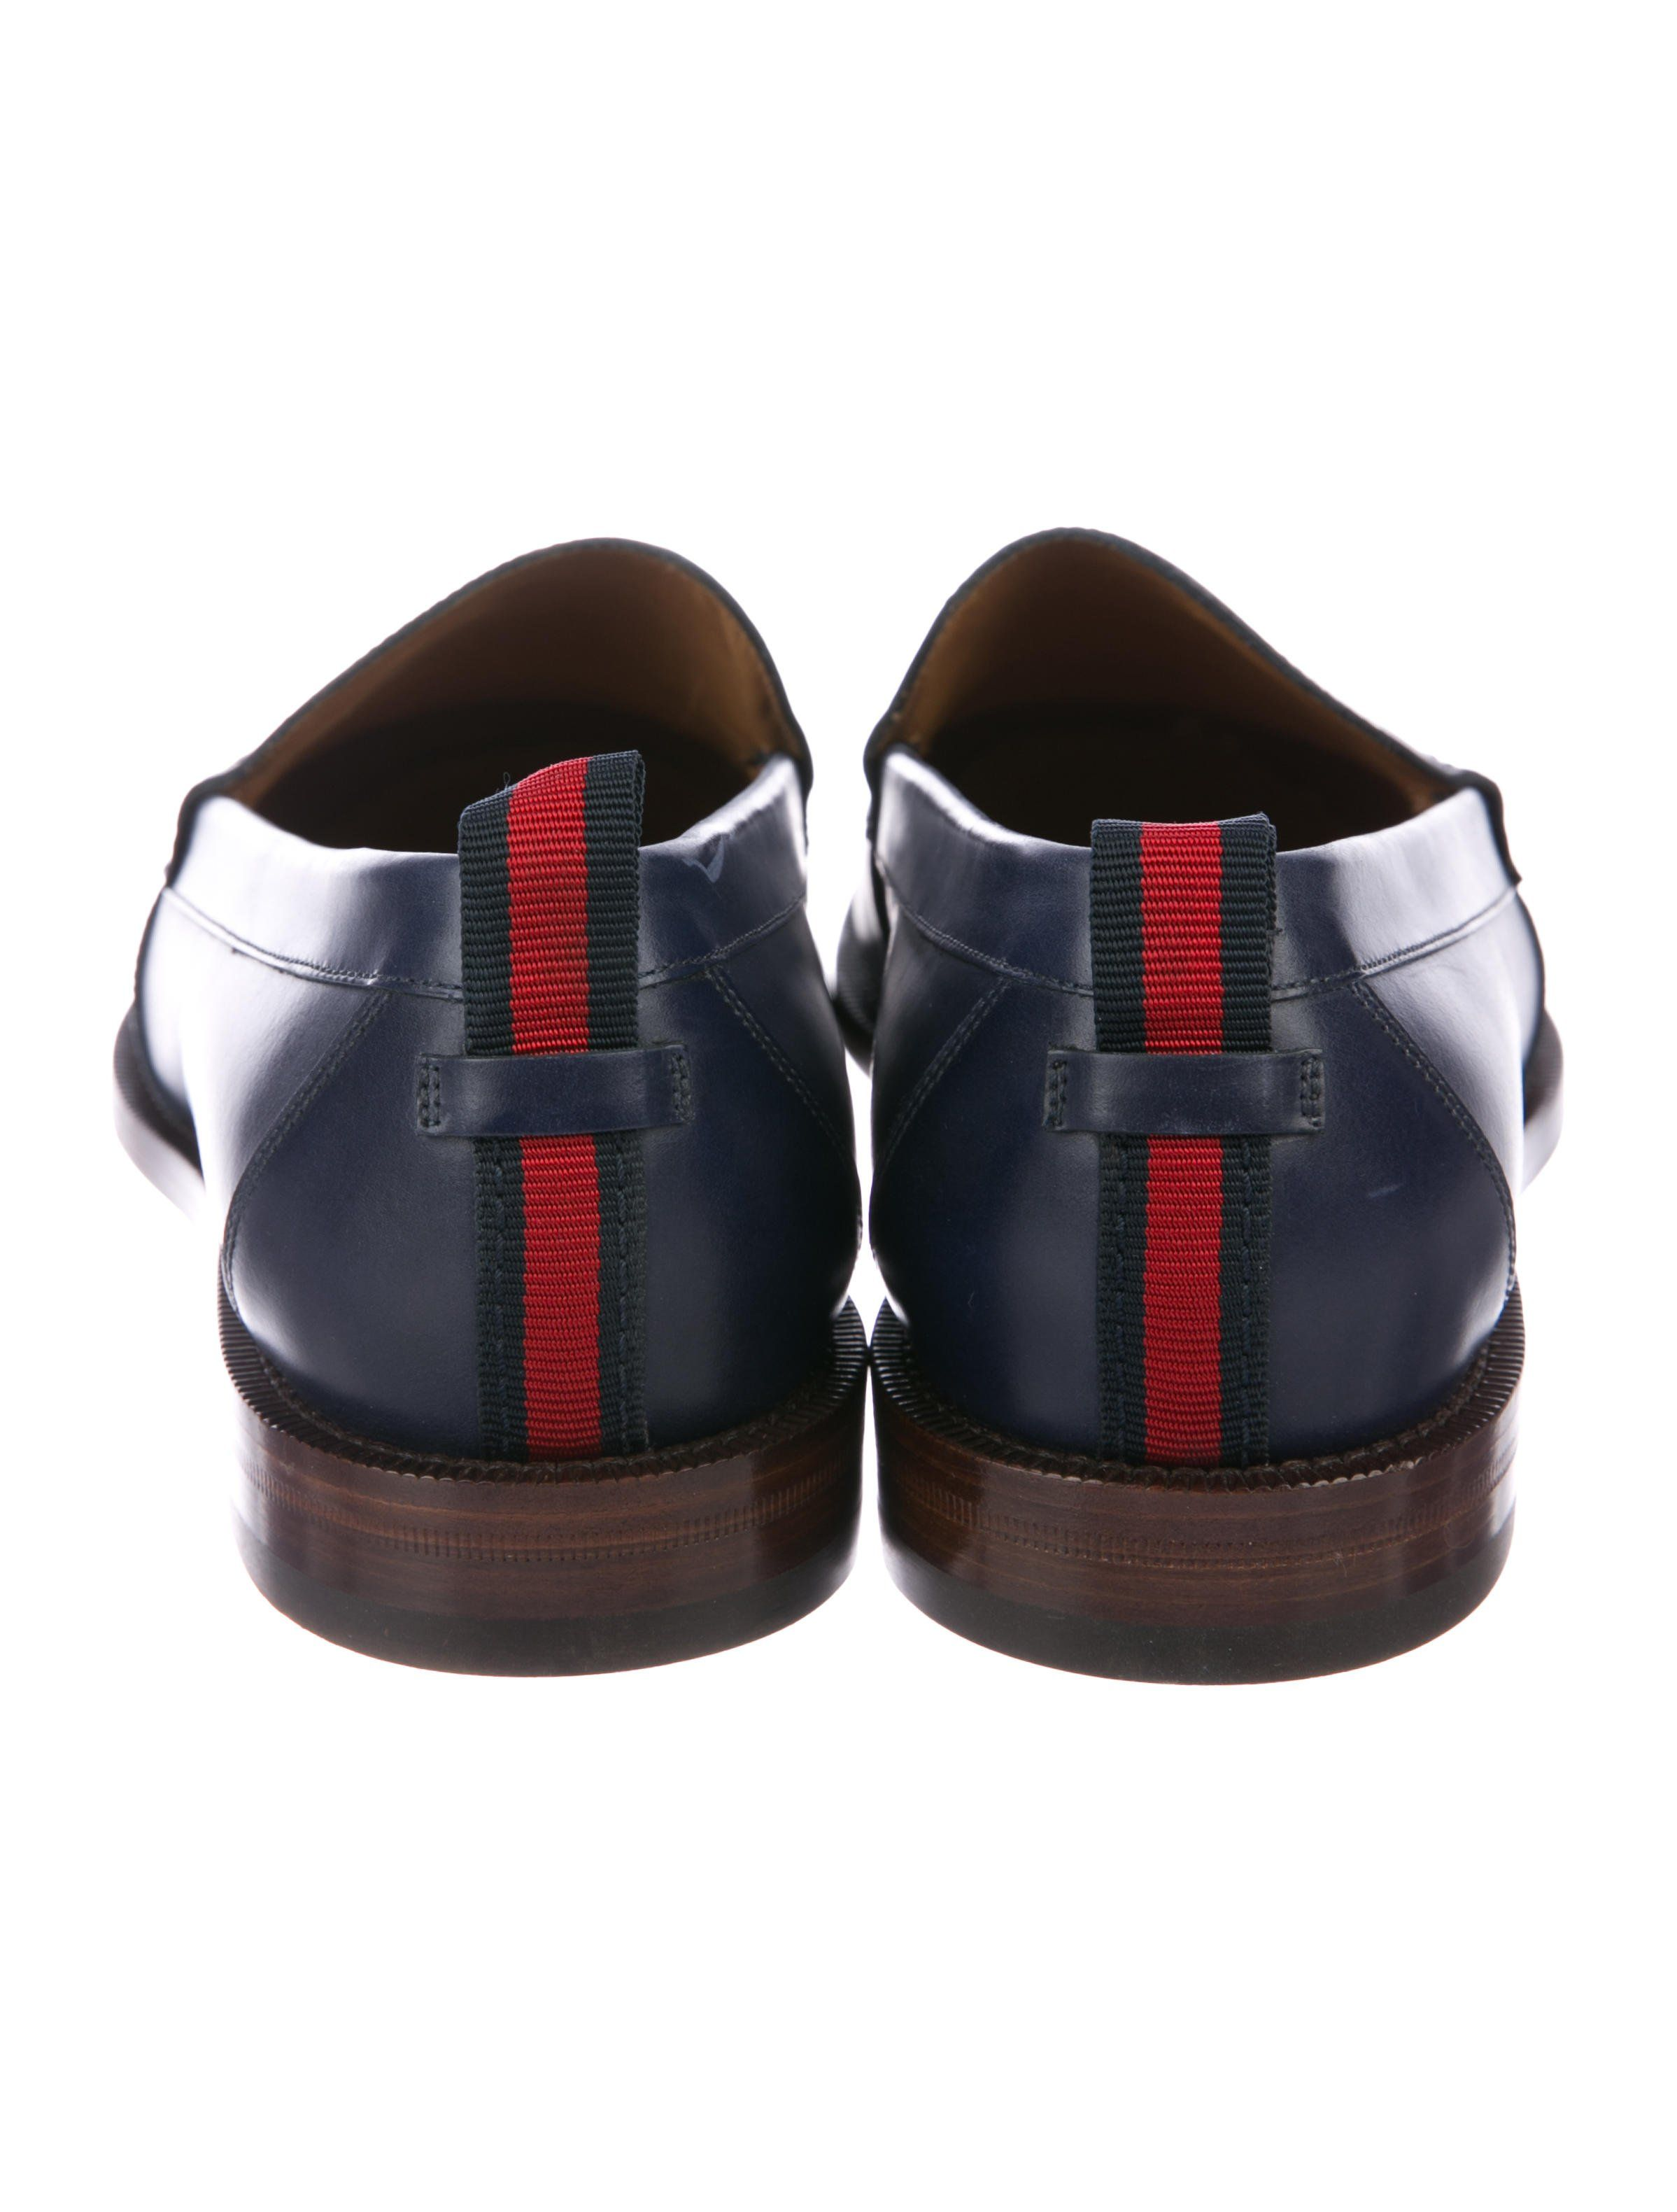 5e3ca30c082 Men s navy leather Gucci round-toe penny loafers with Web trim at counters  and stacked